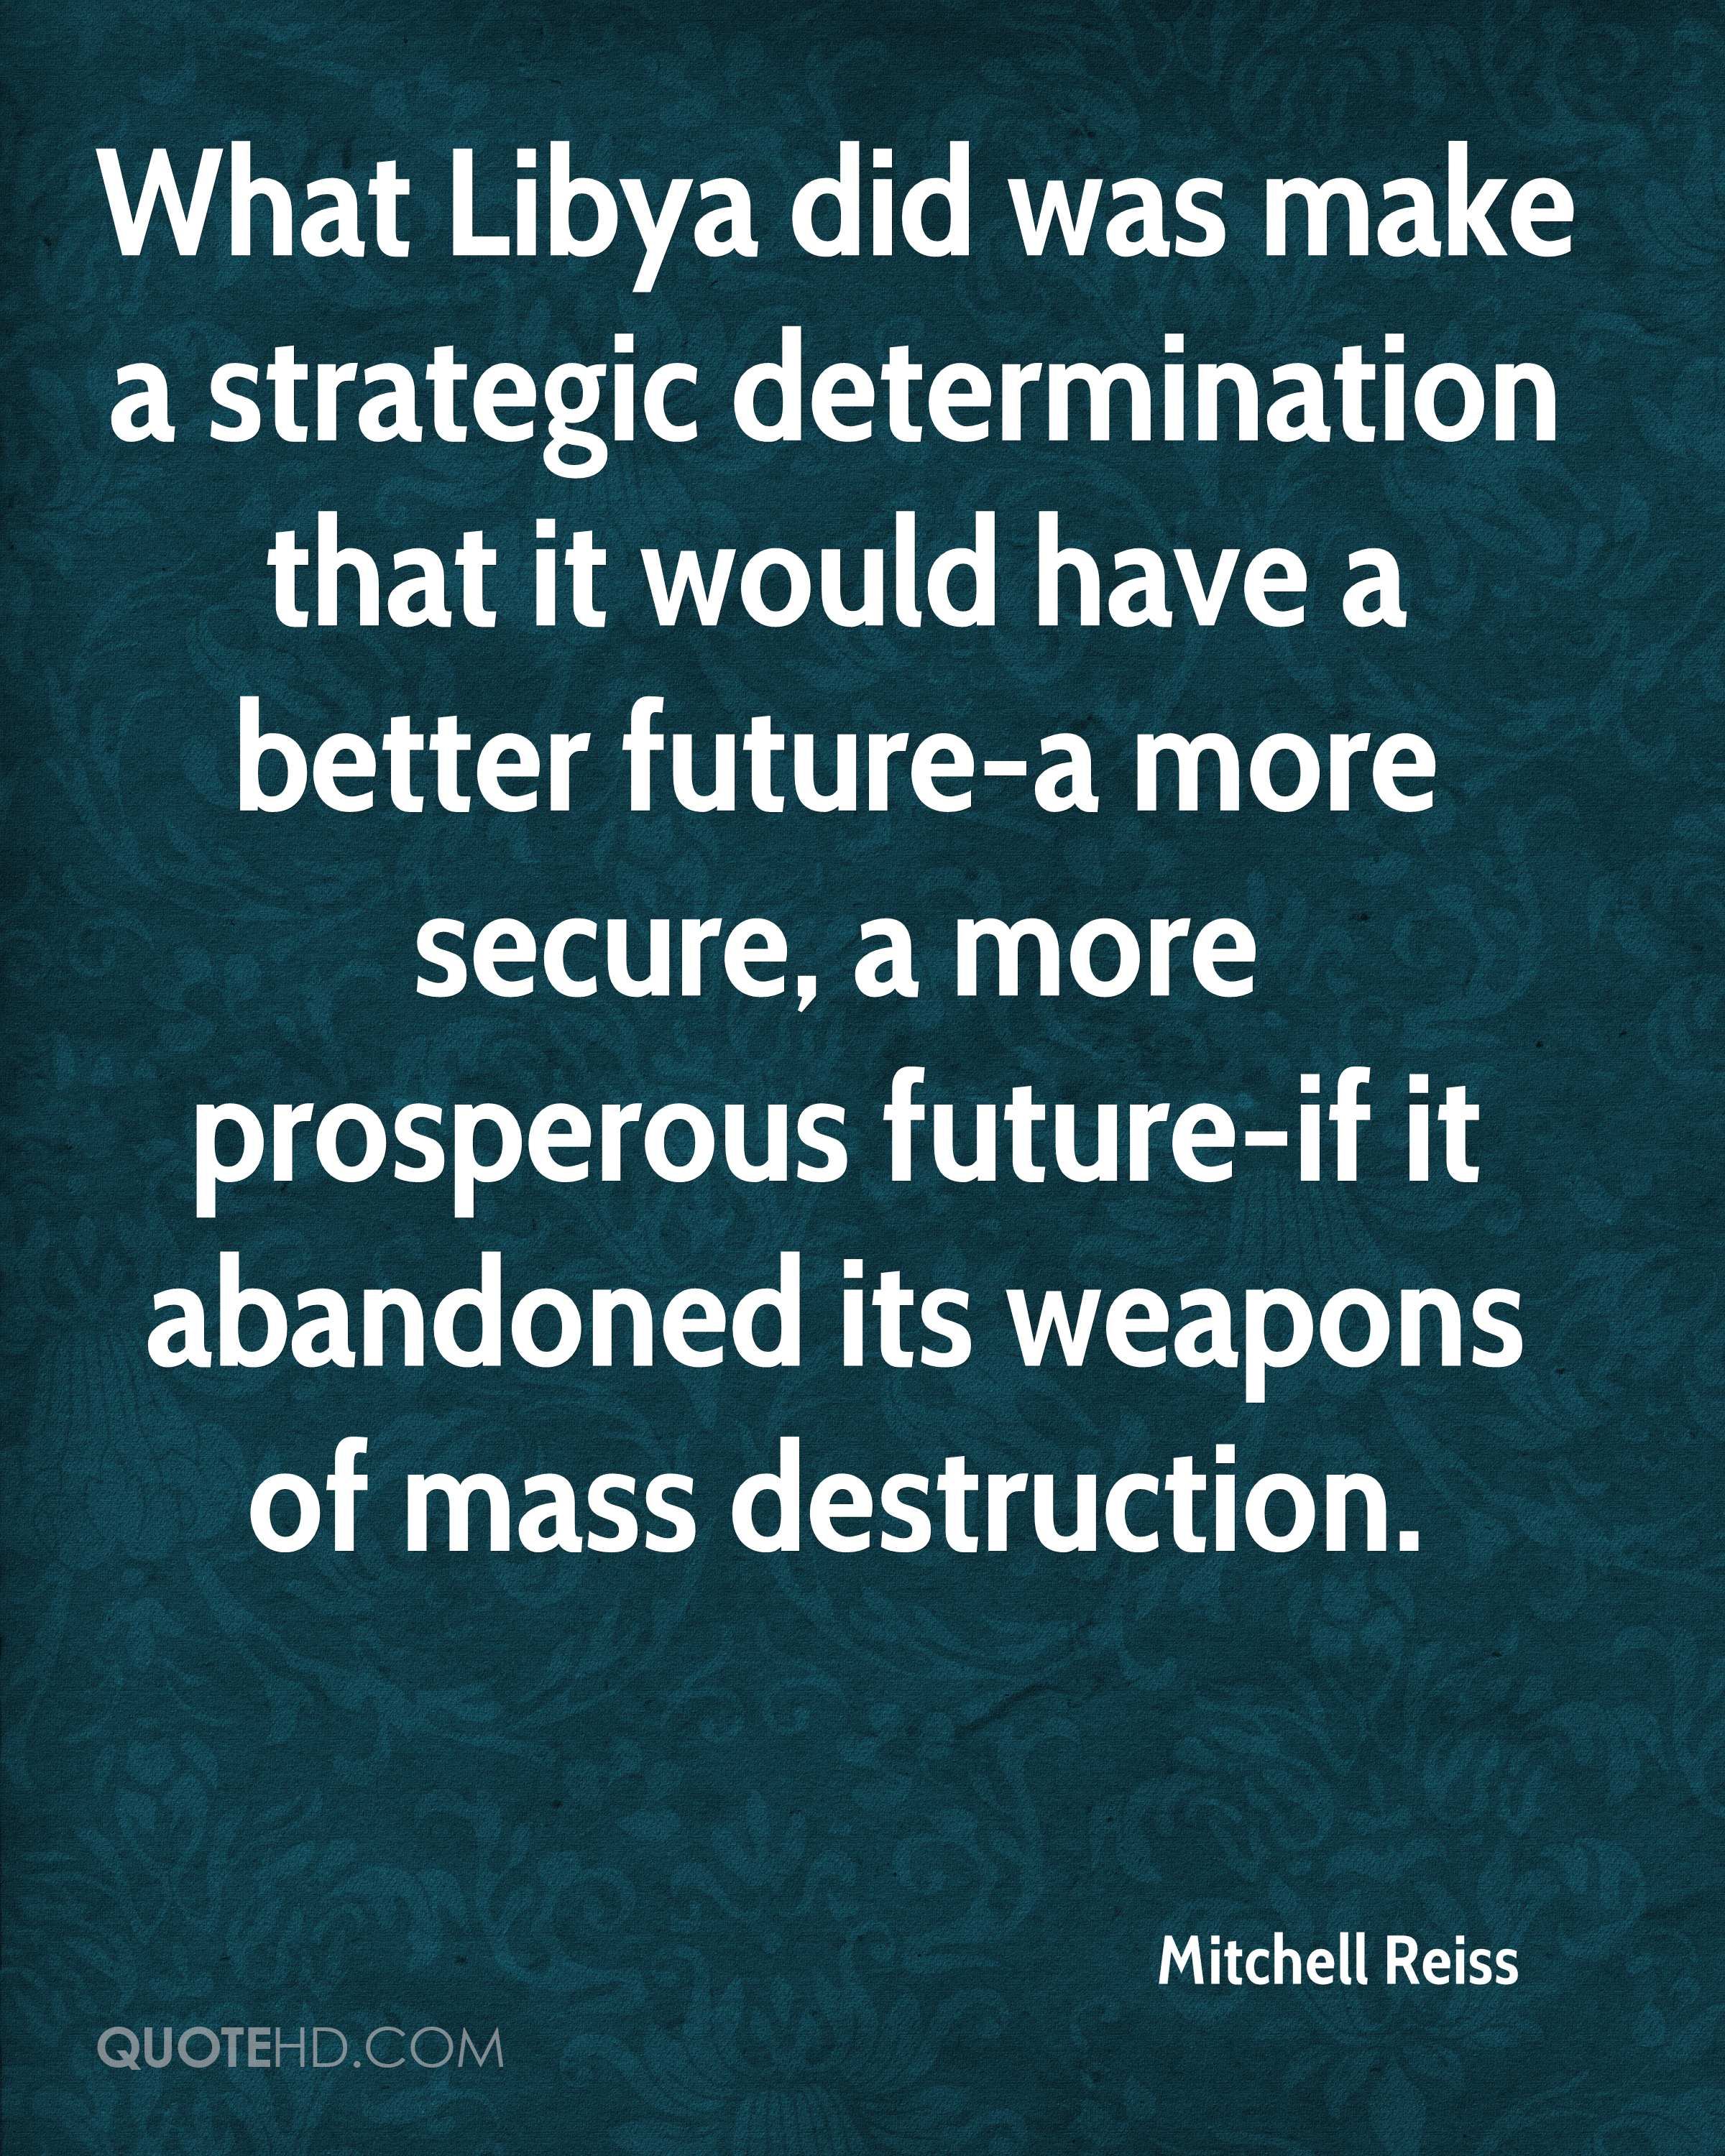 What Libya did was make a strategic determination that it would have a better future-a more secure, a more prosperous future-if it abandoned its weapons of mass destruction.